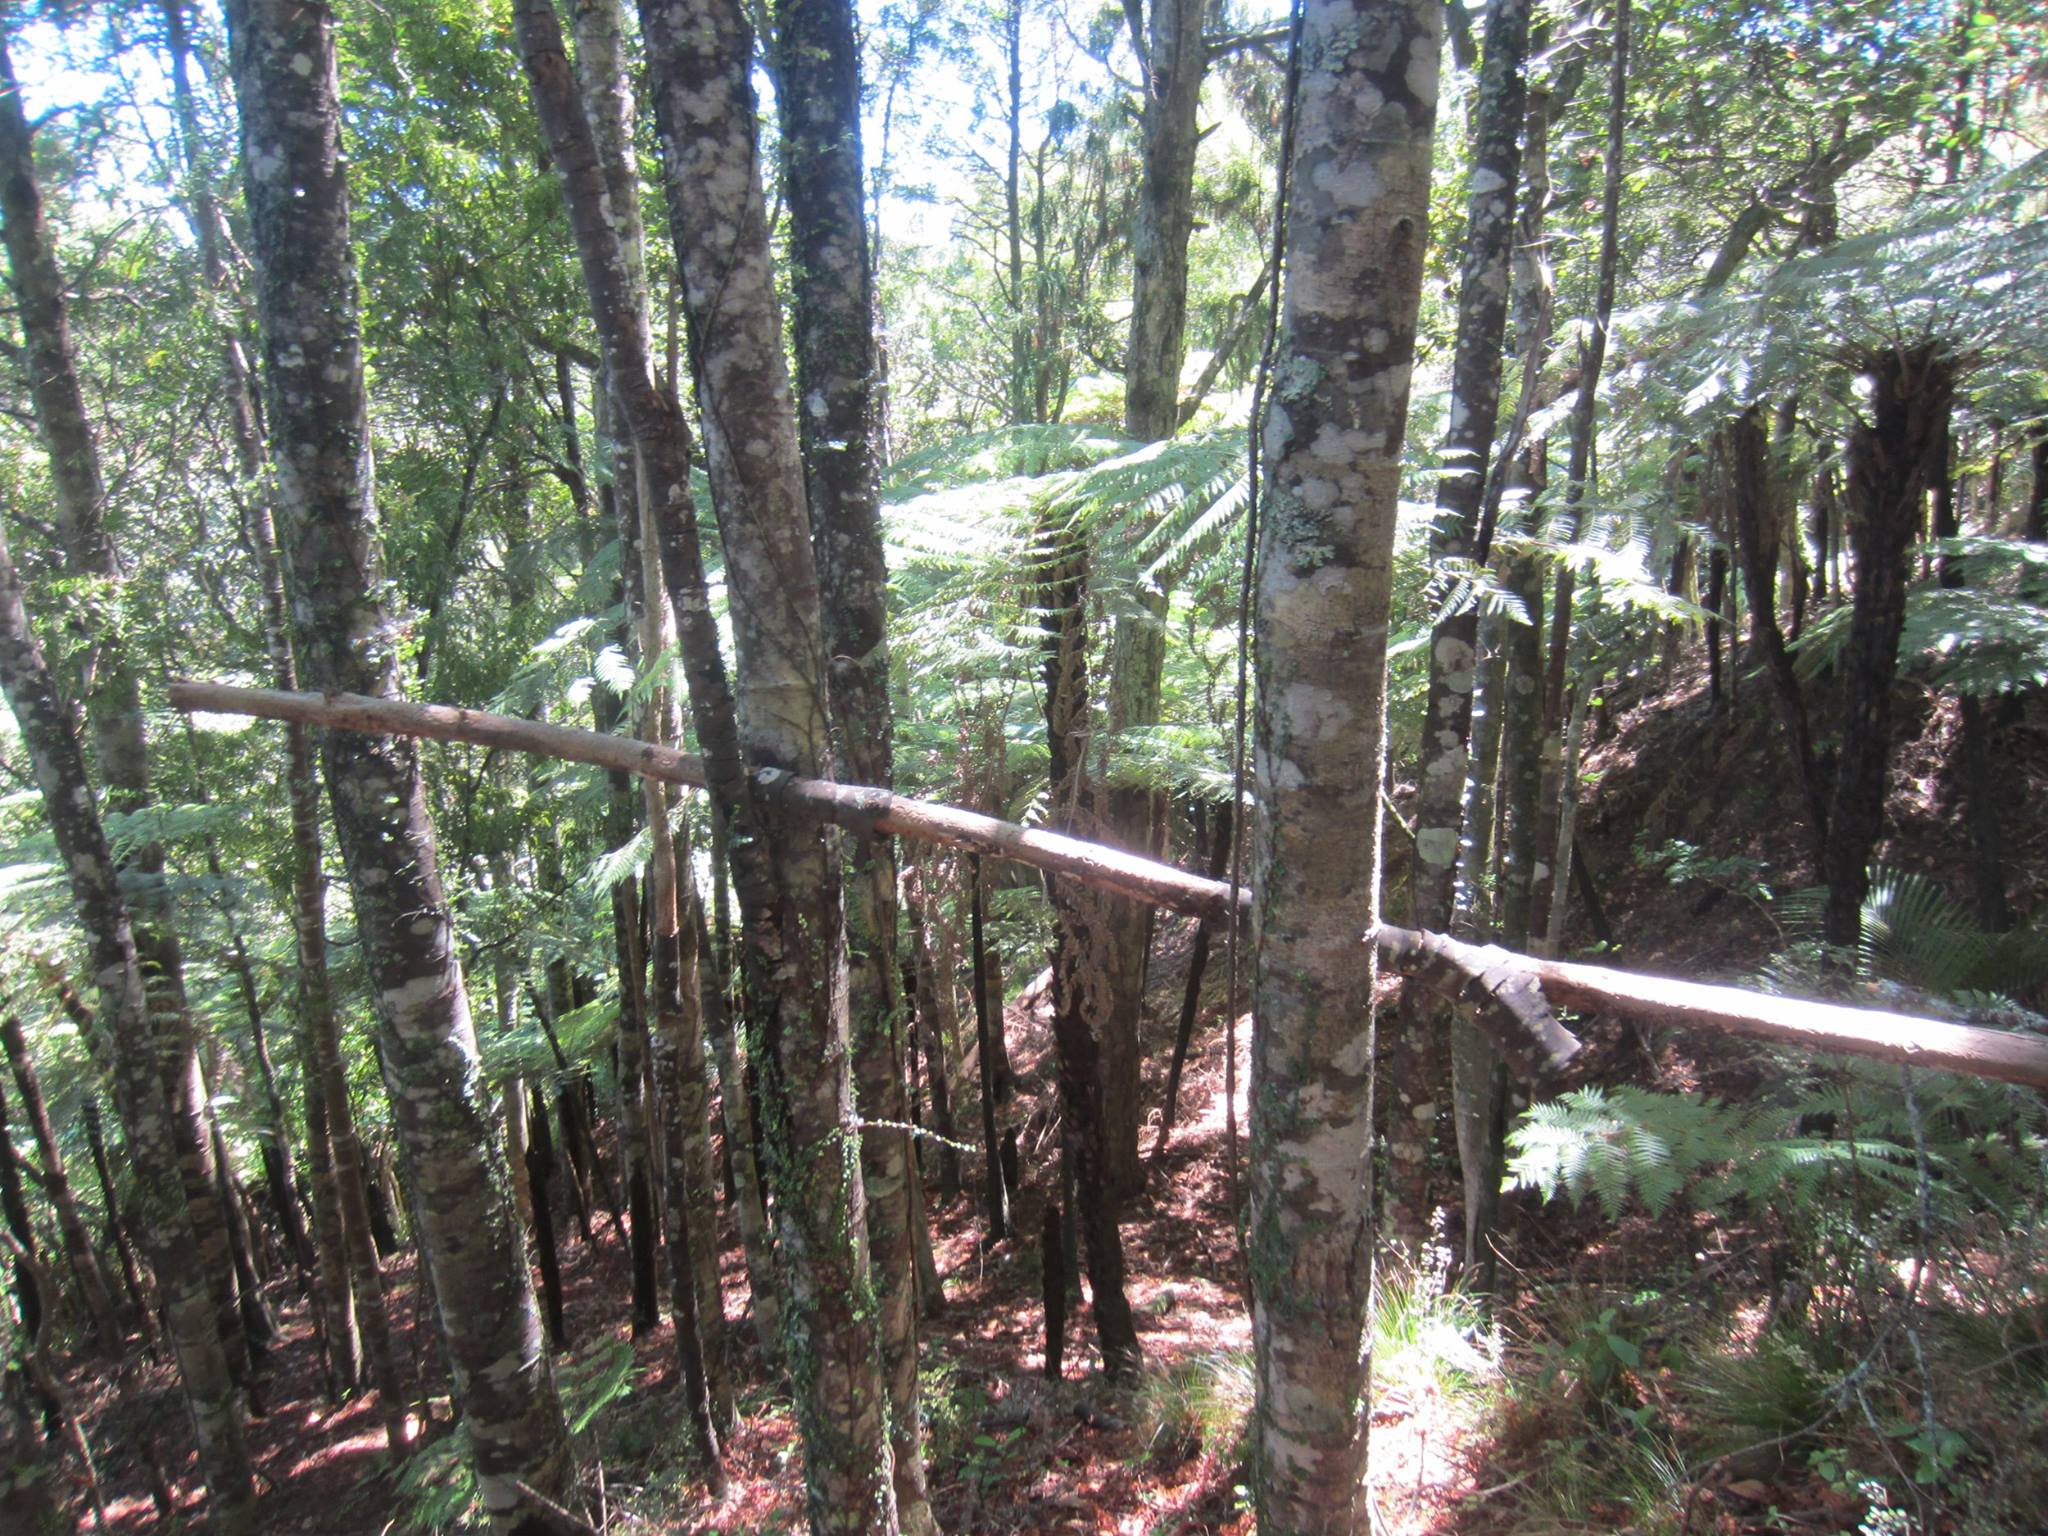 NZ_Bigfoot_Tree_Structure©MarcCoppell